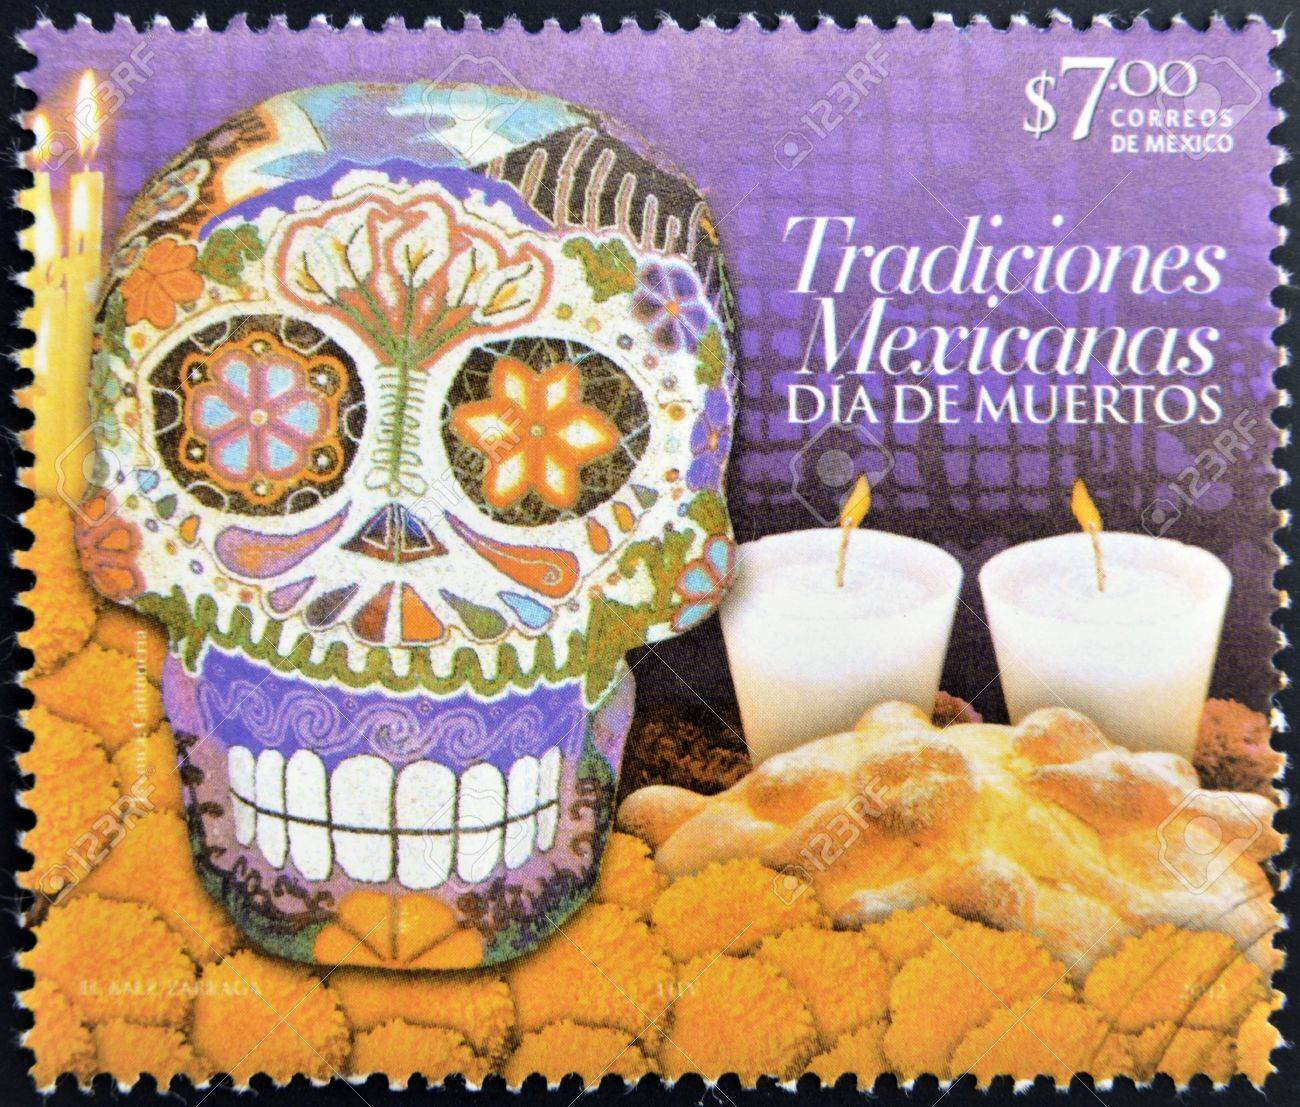 MEXICO - CIRCA 2012: A stamp printed in Mexico dedicated to Mexican traditions, showing Day of the Dead, circa 2012 Stock Photo - 20404845